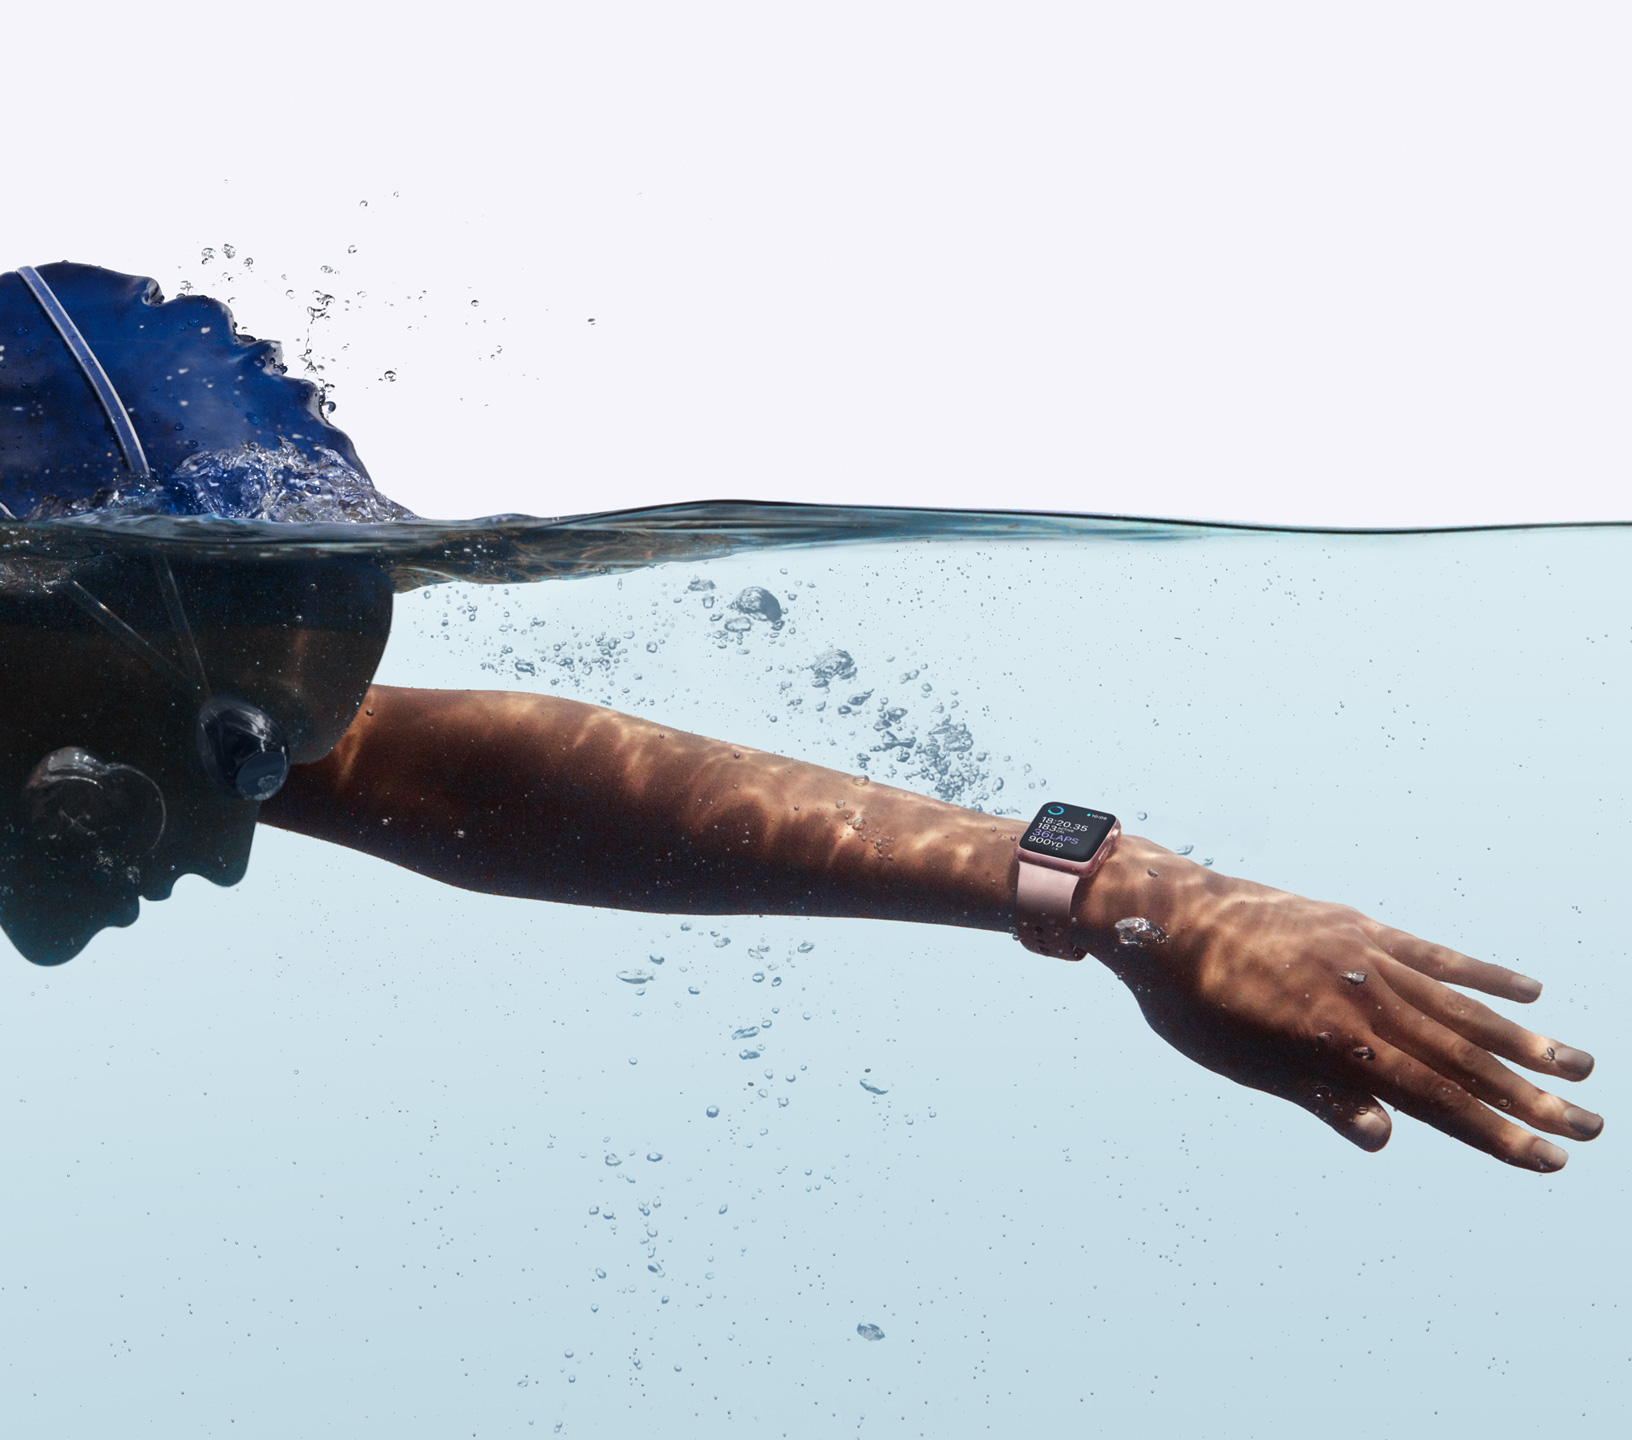 Apple Watch Series 2 Swimming